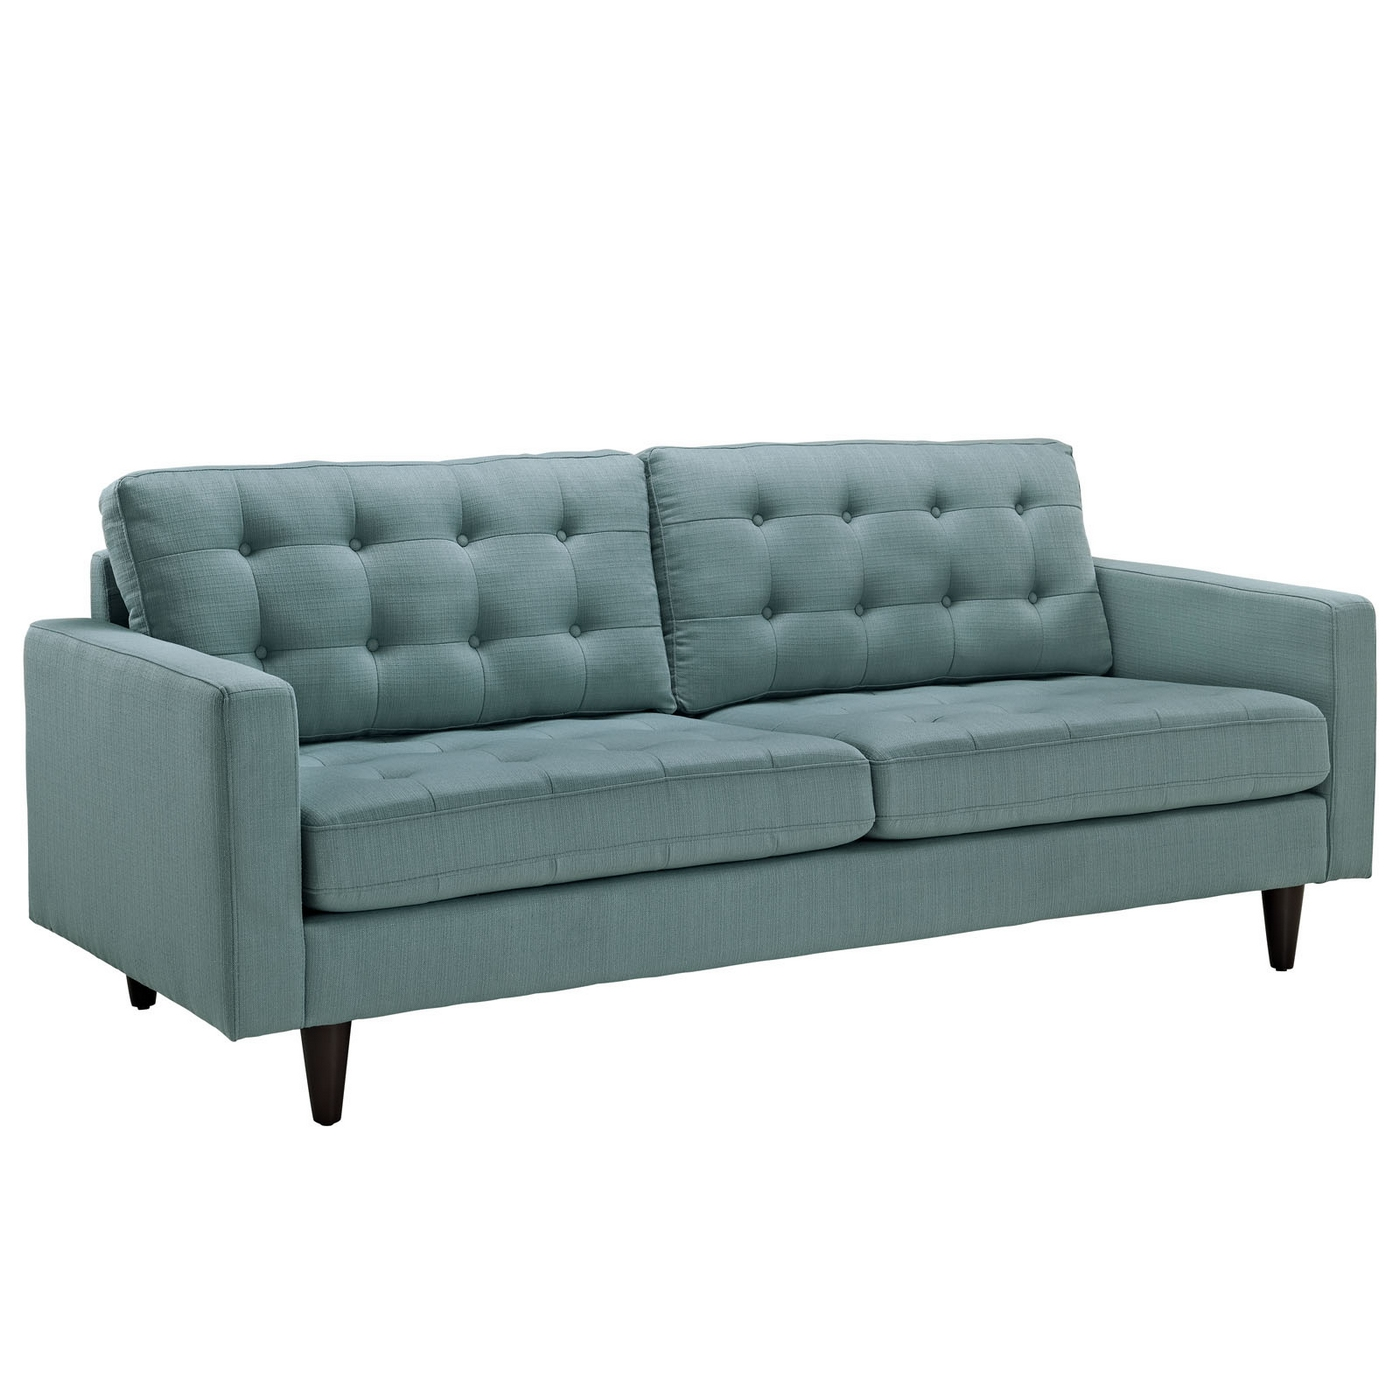 Empress contemporary button tufted upholstered sofa laguna for Contemporary sofa